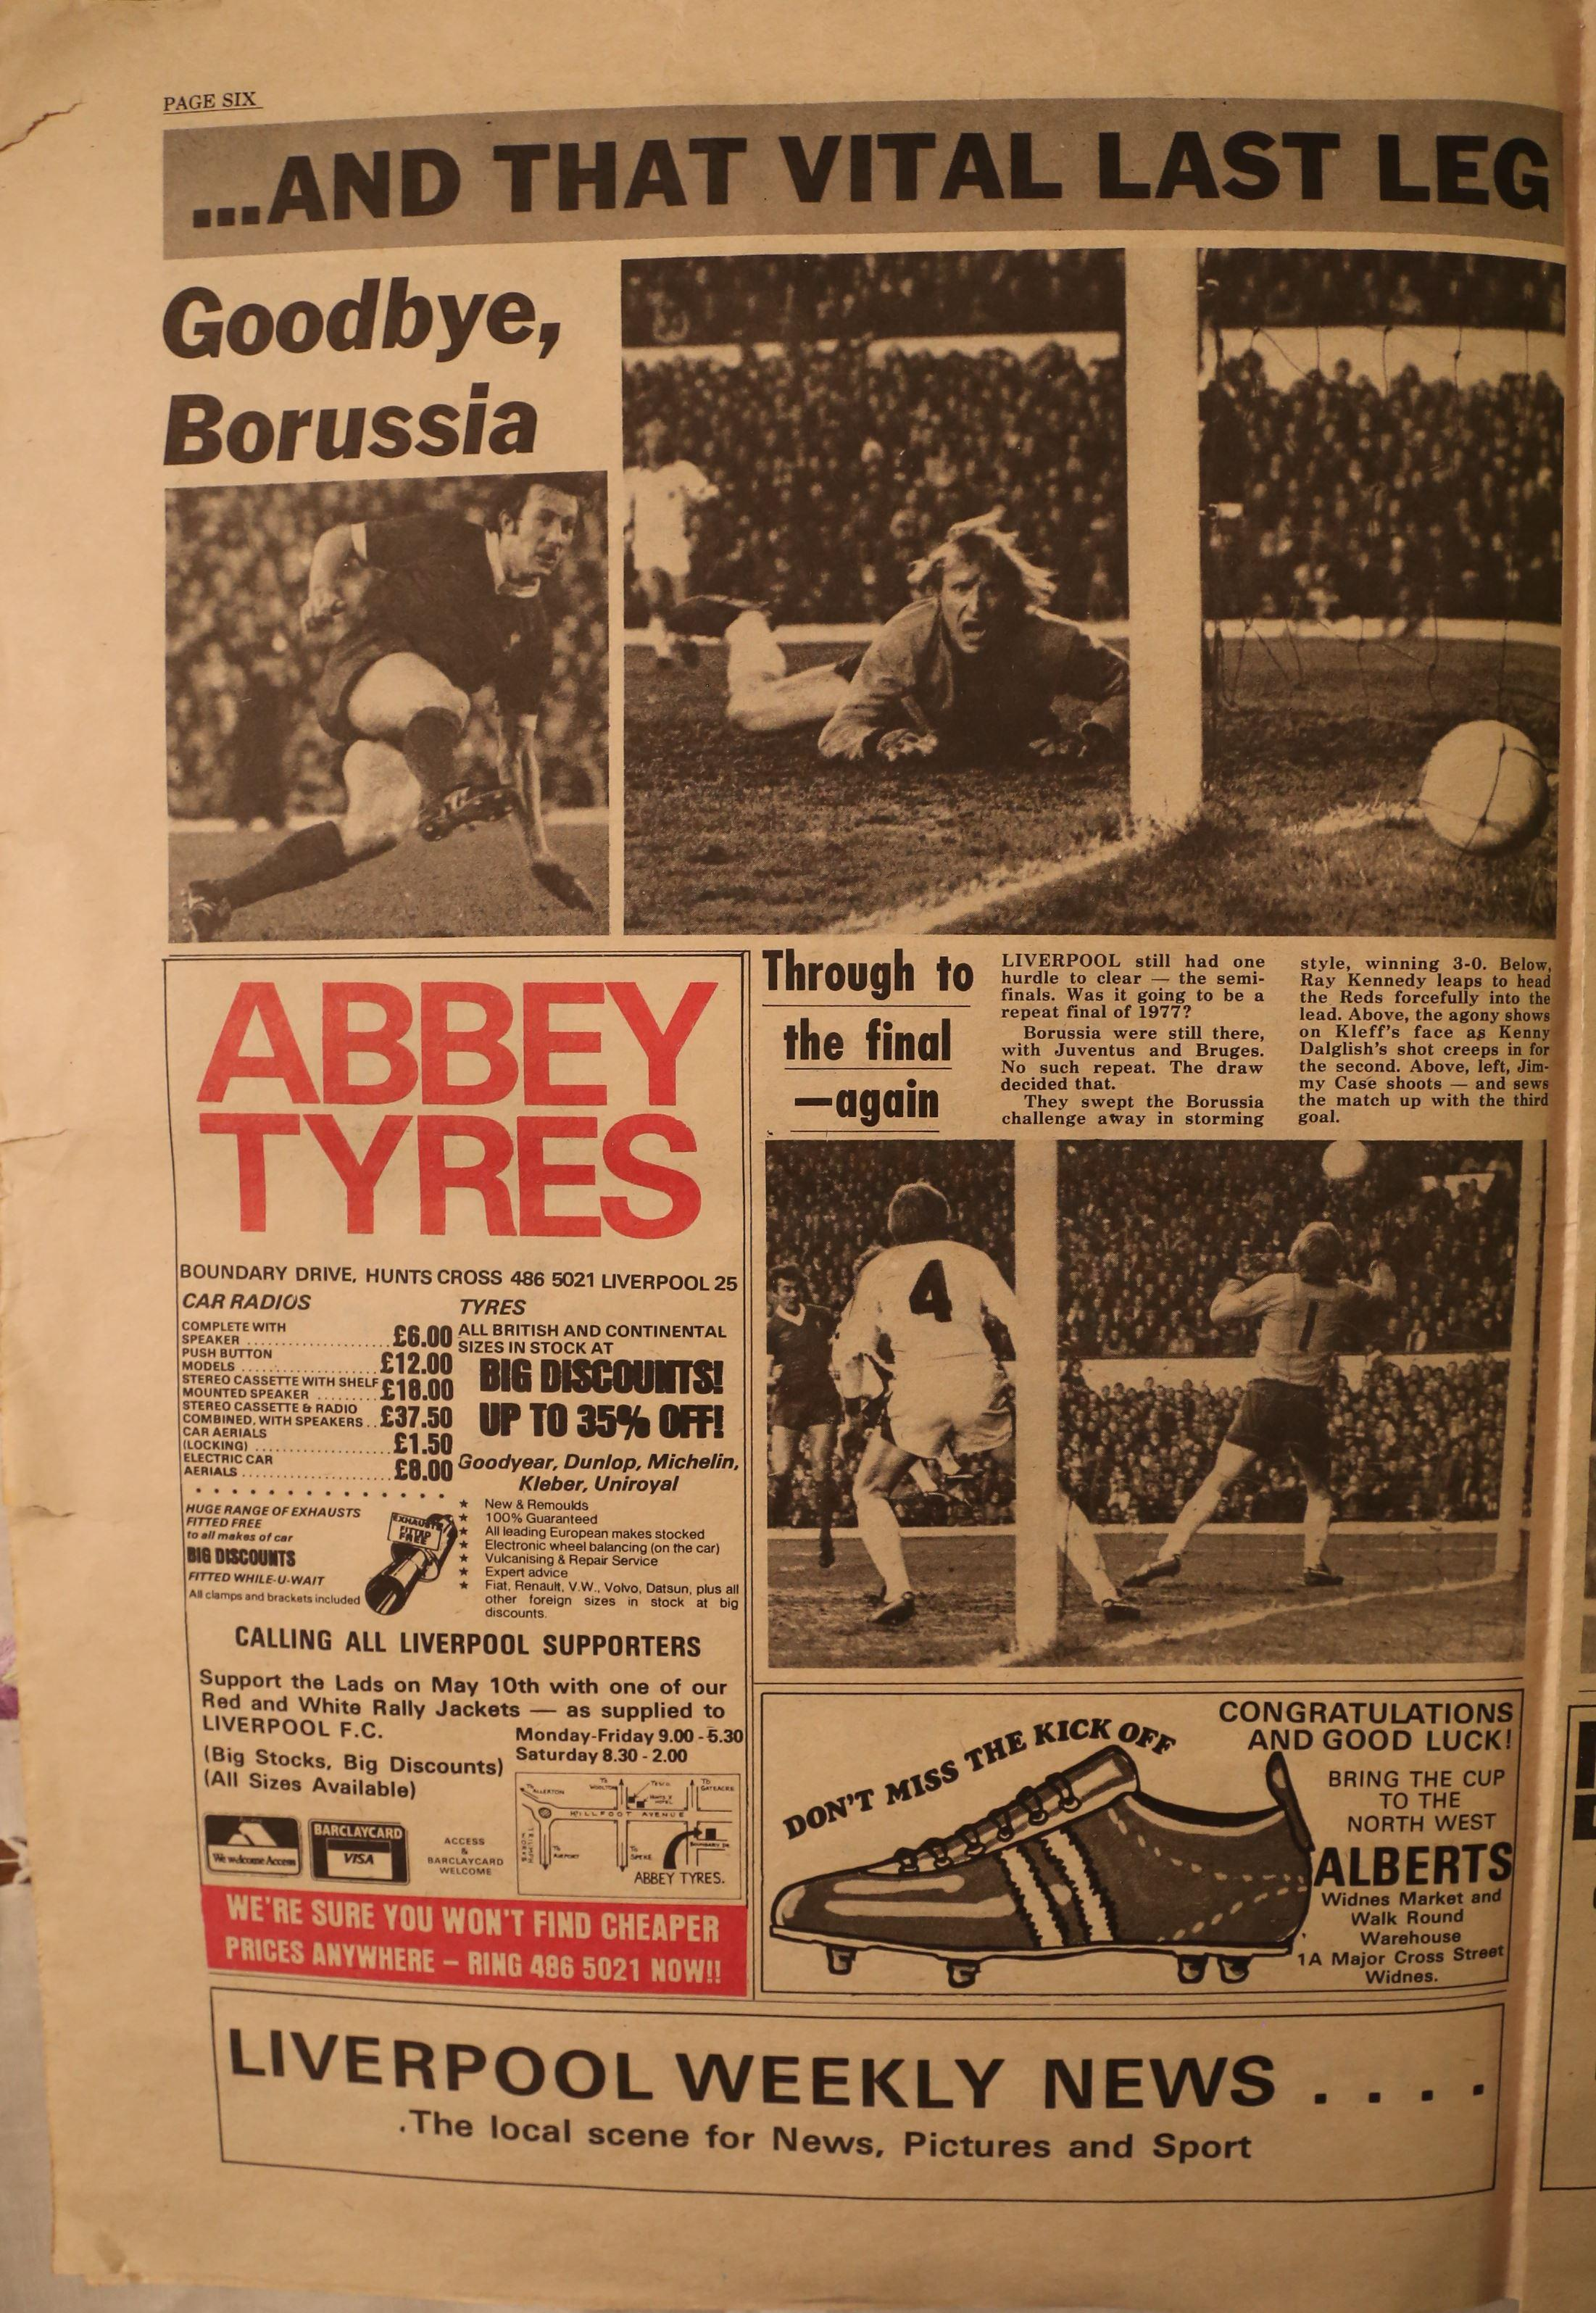 Goodbye Borussia! - April 1978